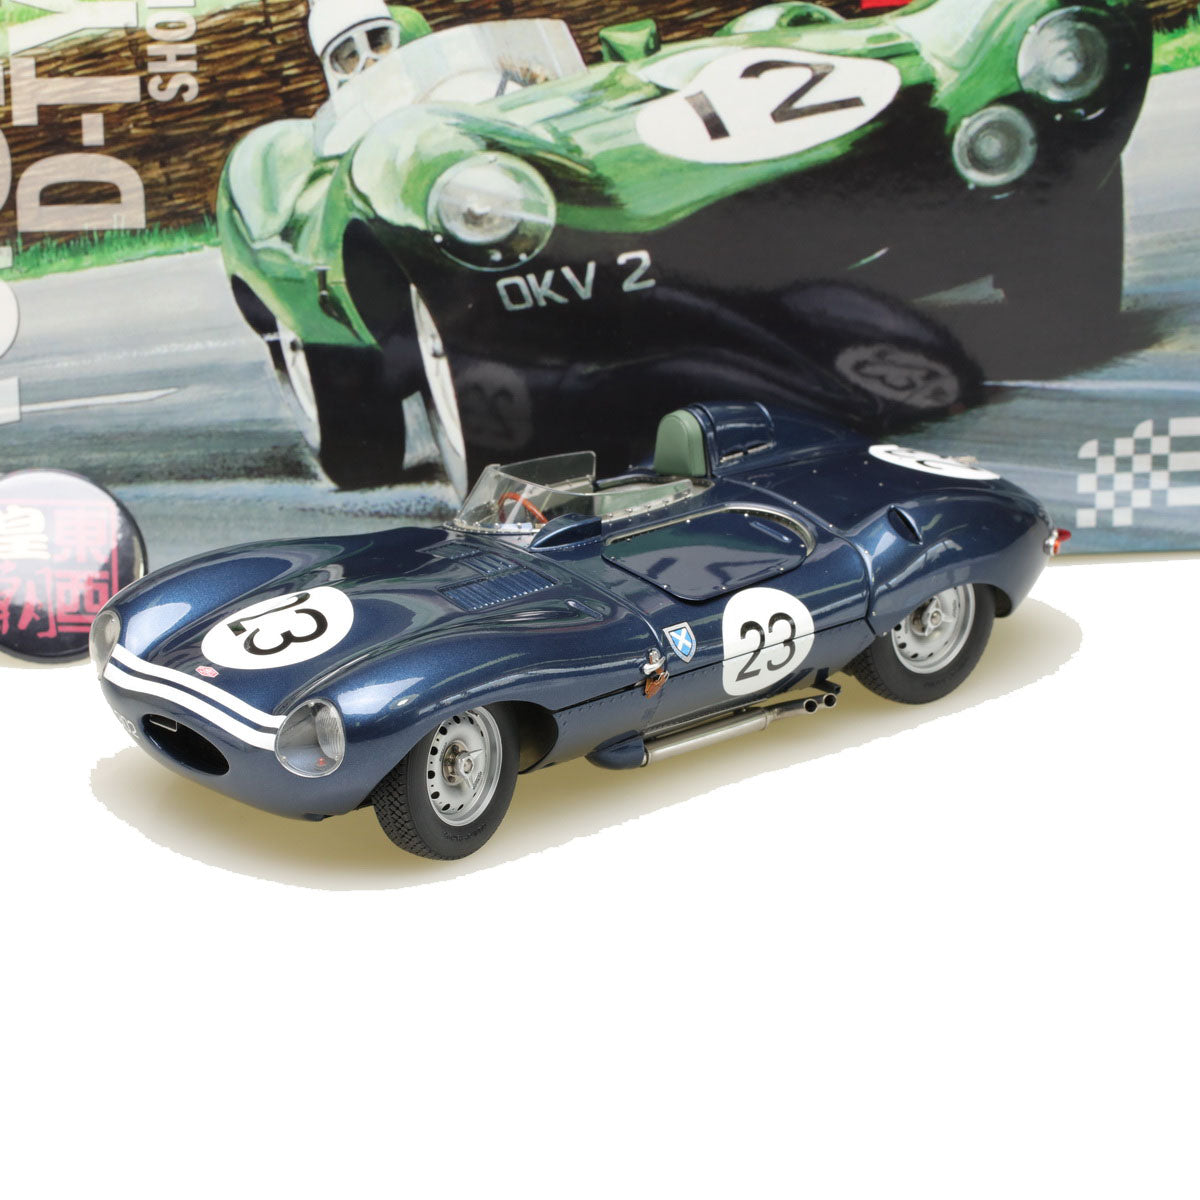 EXOTO XS 1:18 1956 Jaguar D-Type #23 Short Nose Ecurie Ecosse 4th Reims 12 Hours Diecast Model Car RLG88004B